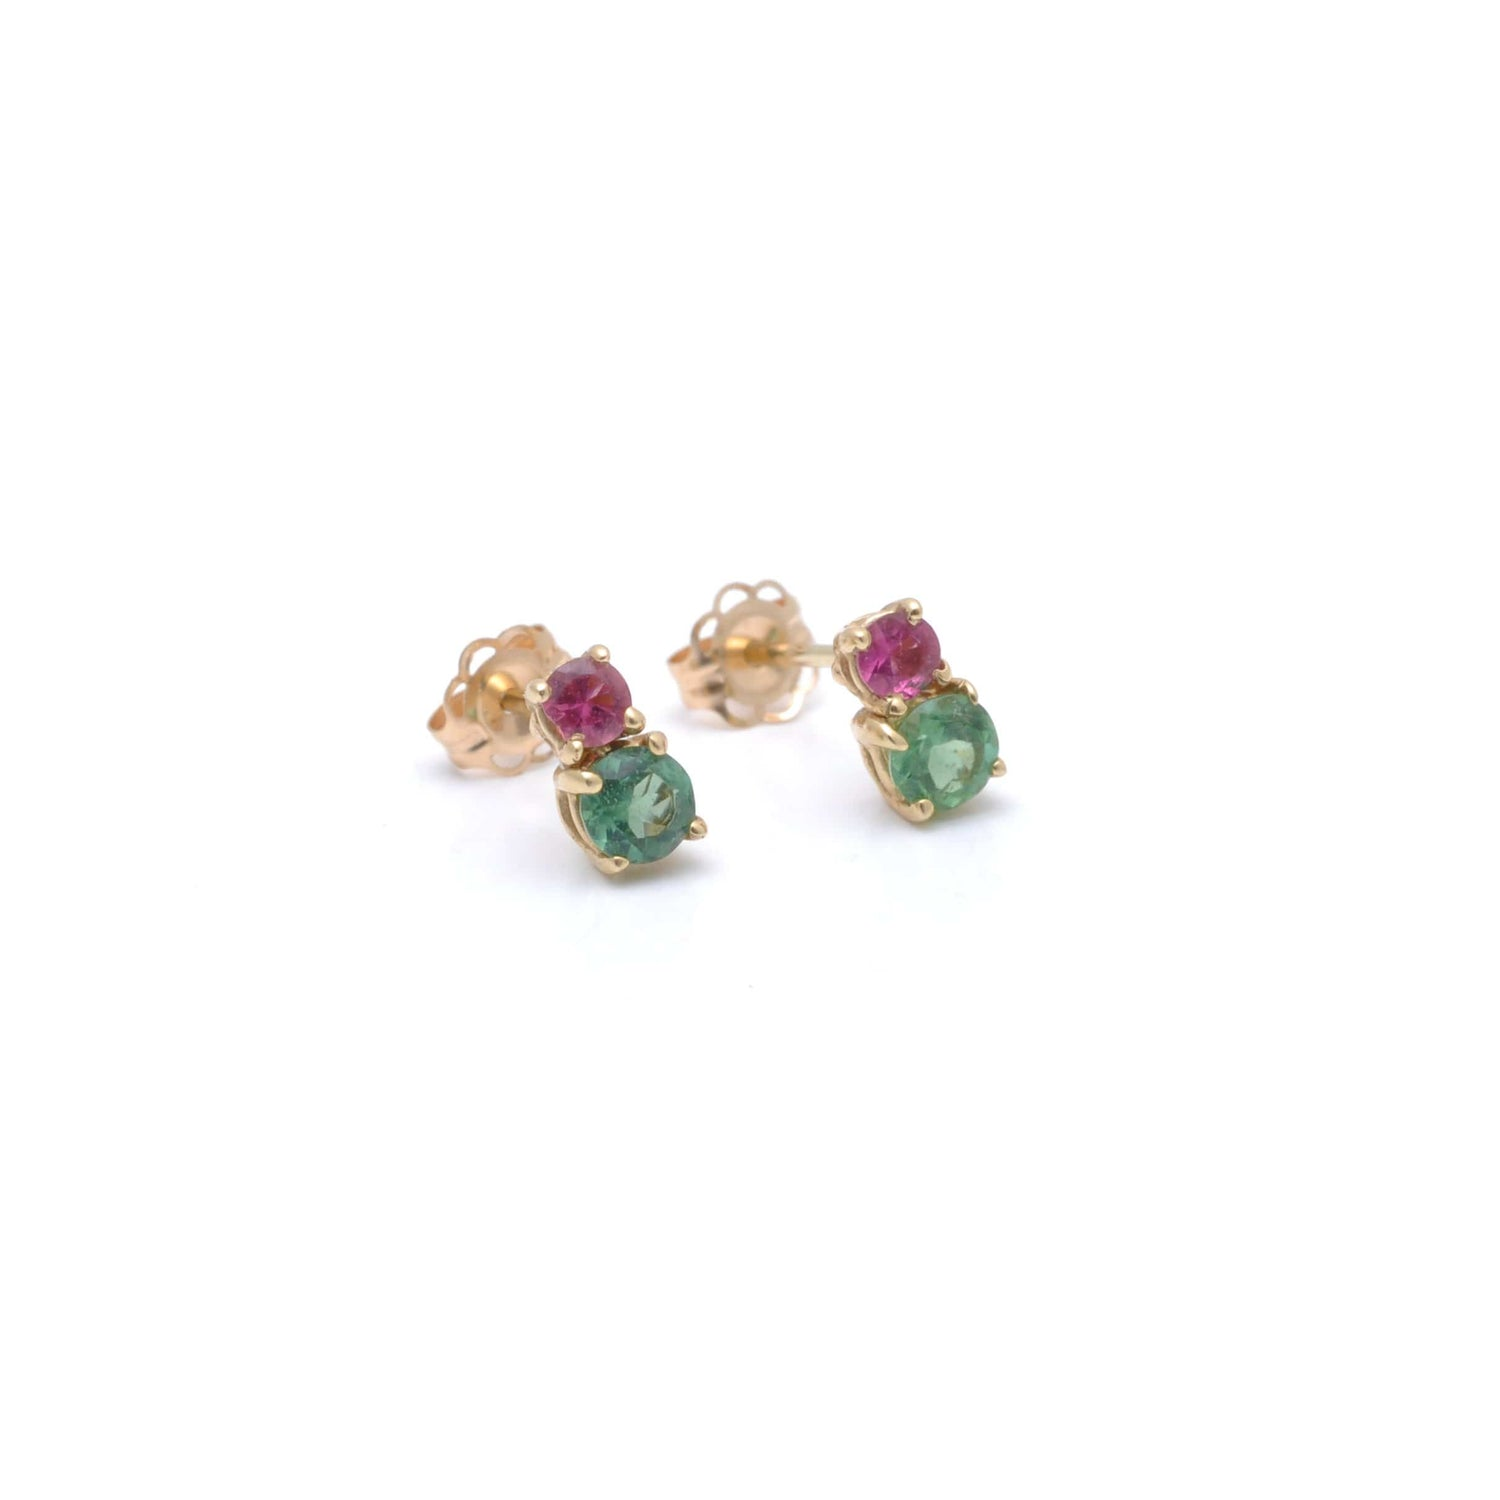 Green Tourmaline and Pink Tourmaline Earrings Caitlin Nicole